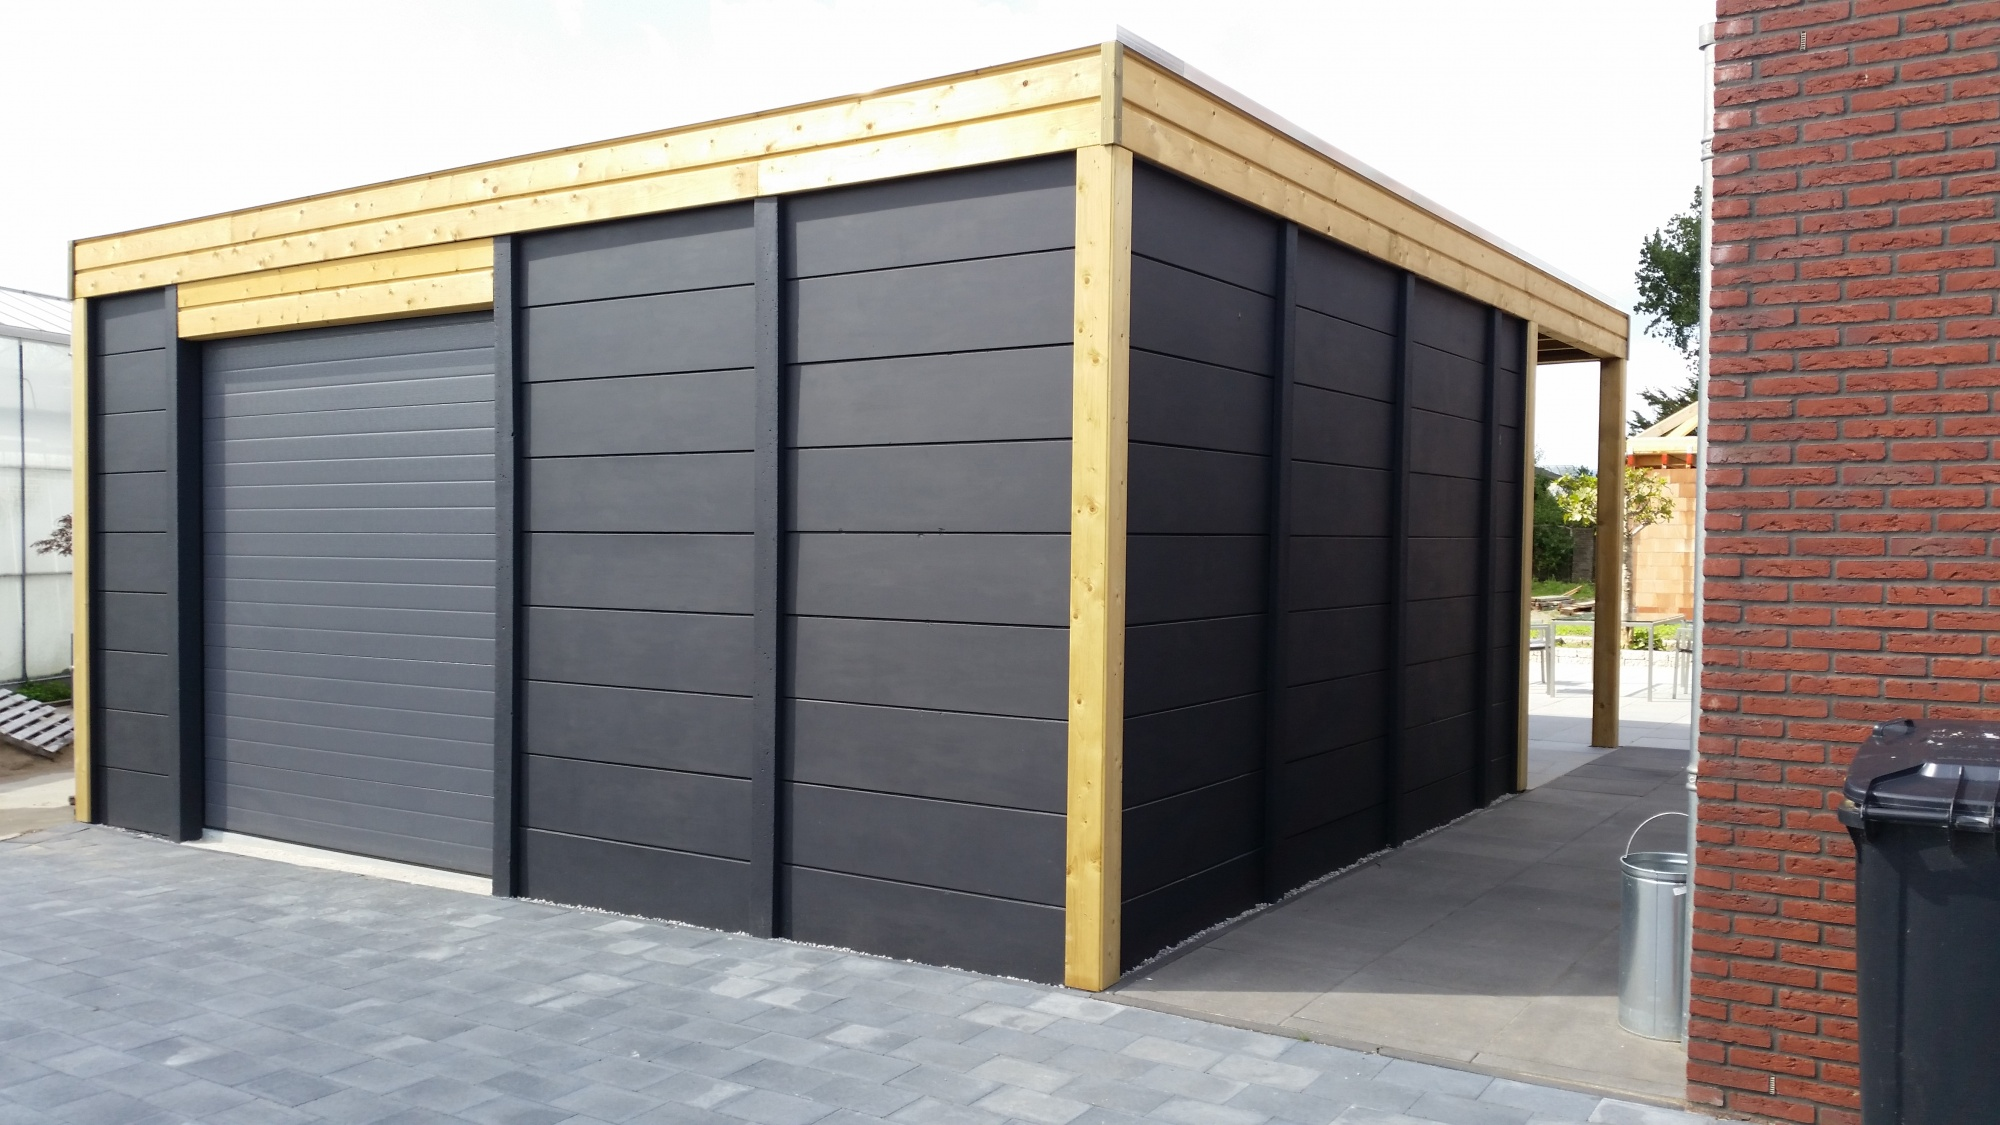 Beton Garage Prefab : Beton garagebox box garage sbnbouw